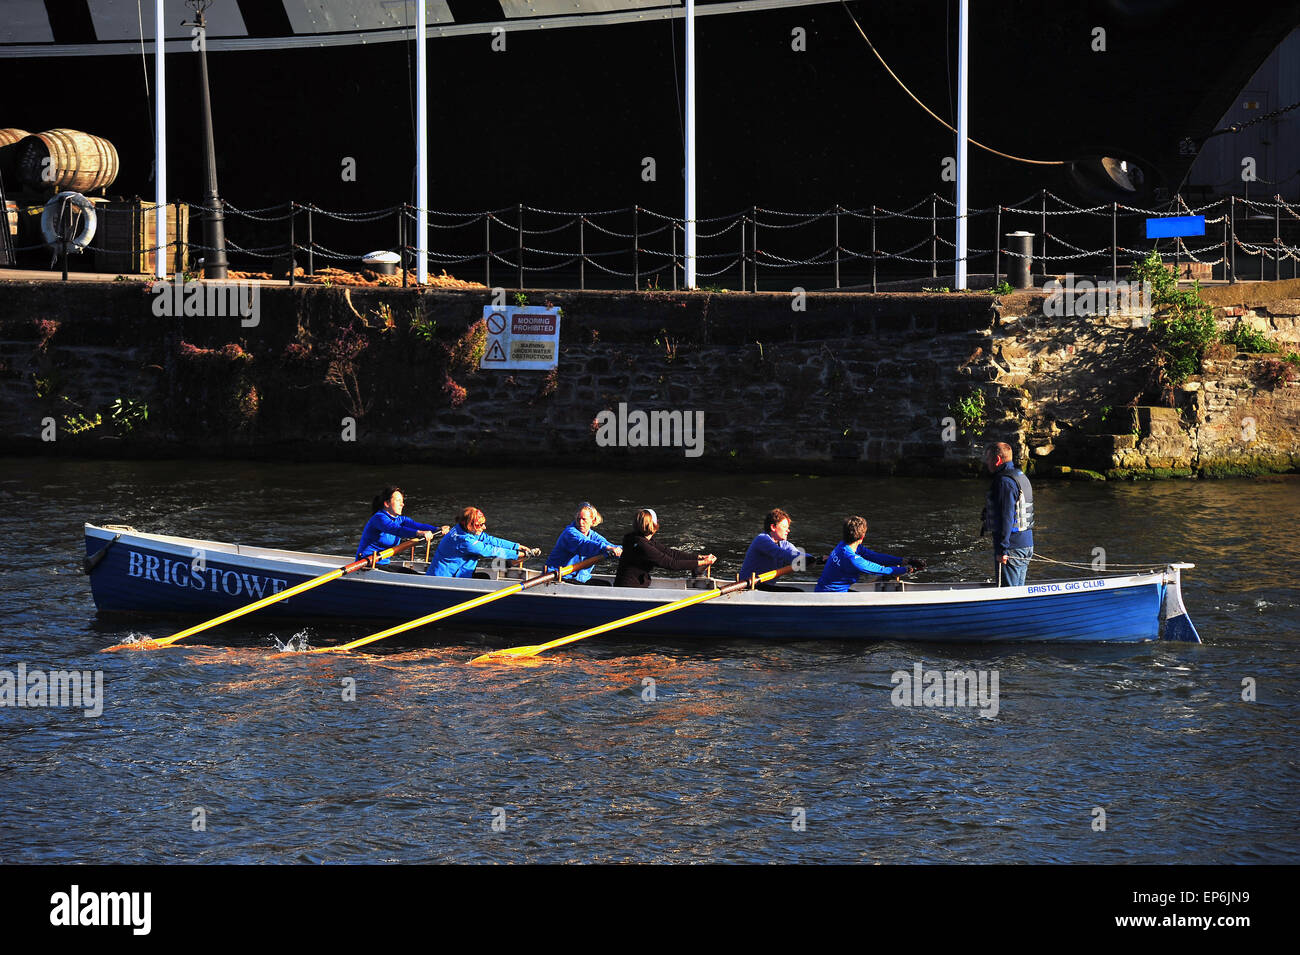 A rowing boat passes the SS Great Britain in the waters of Bristol Harbour. - Stock Image